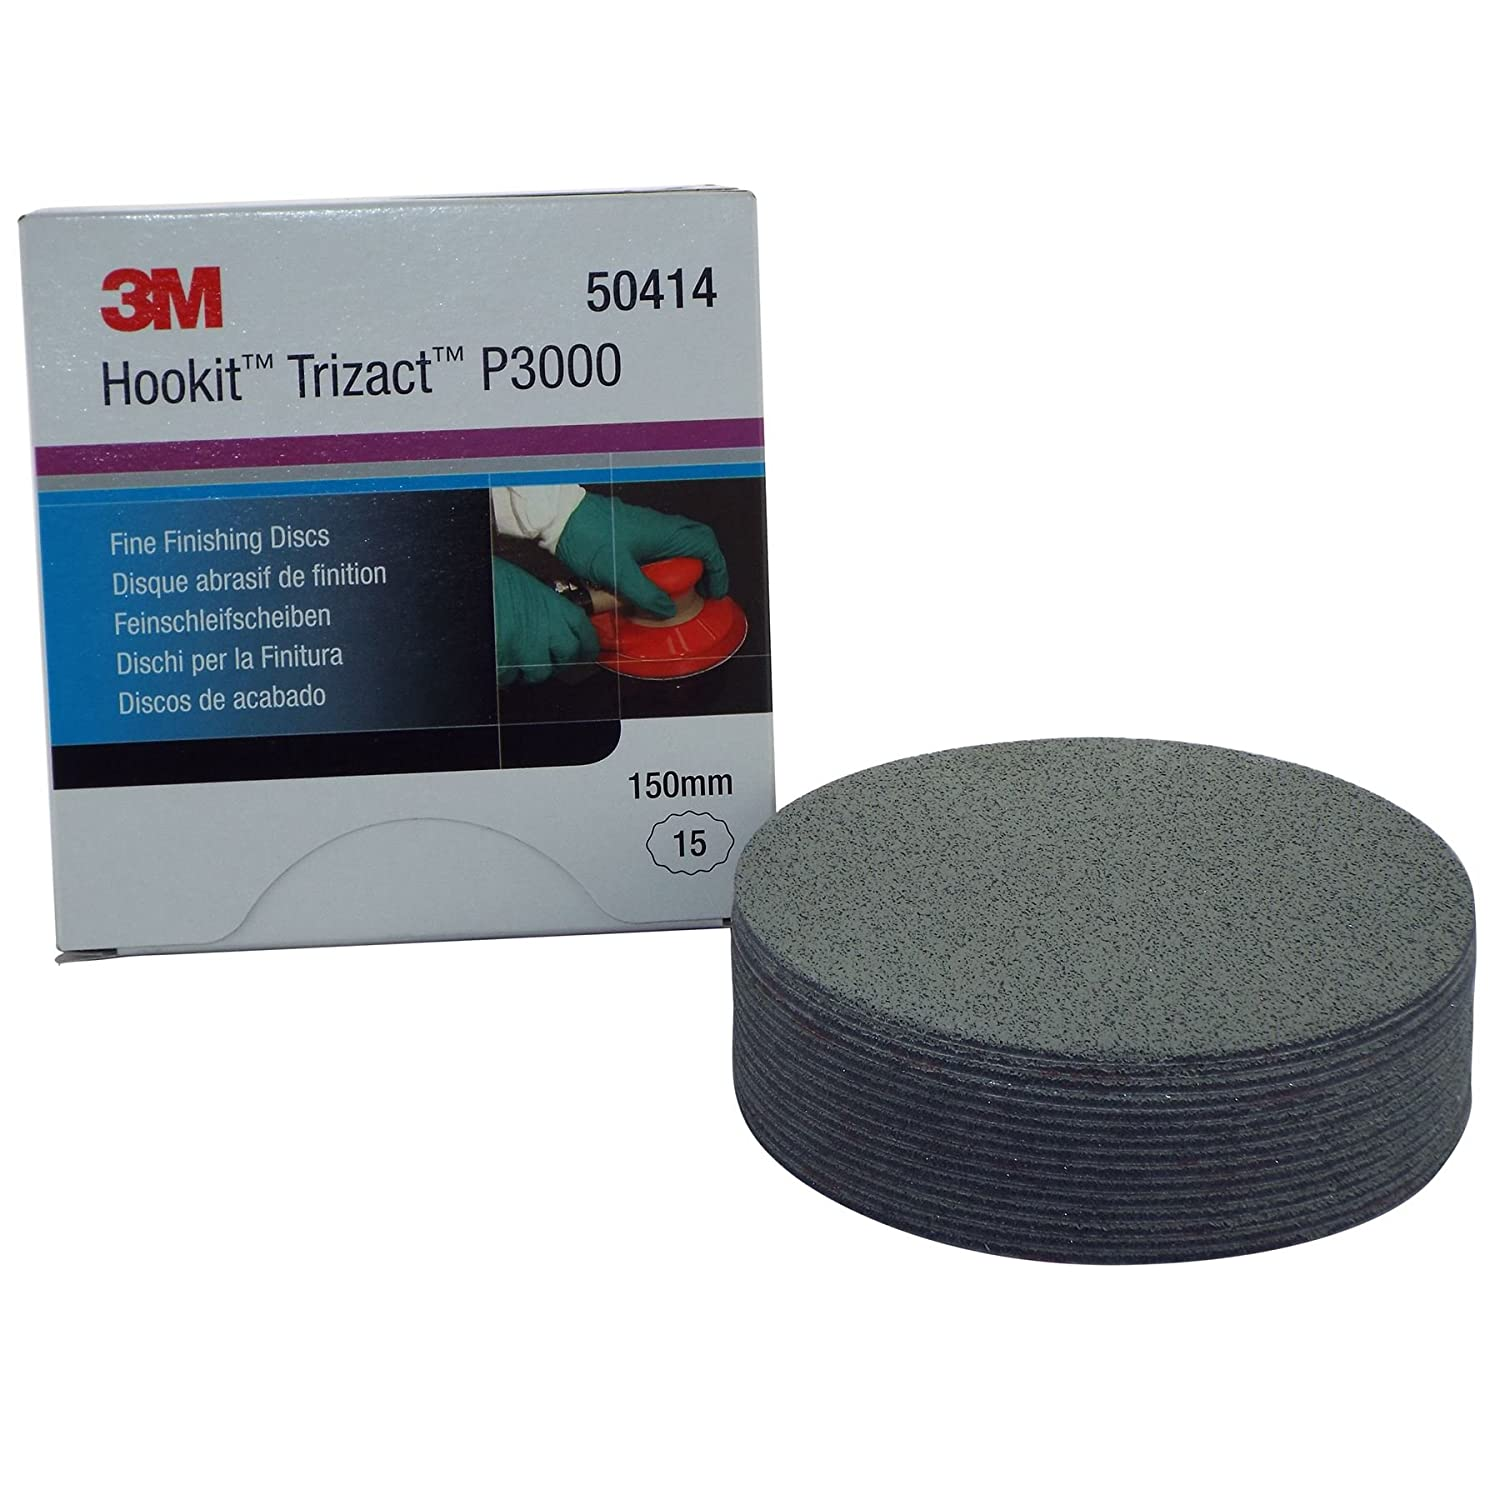 3M 50414 Trizact Fine Finishing Abrasive Discs 15 Pieces P3000 150mm Painting